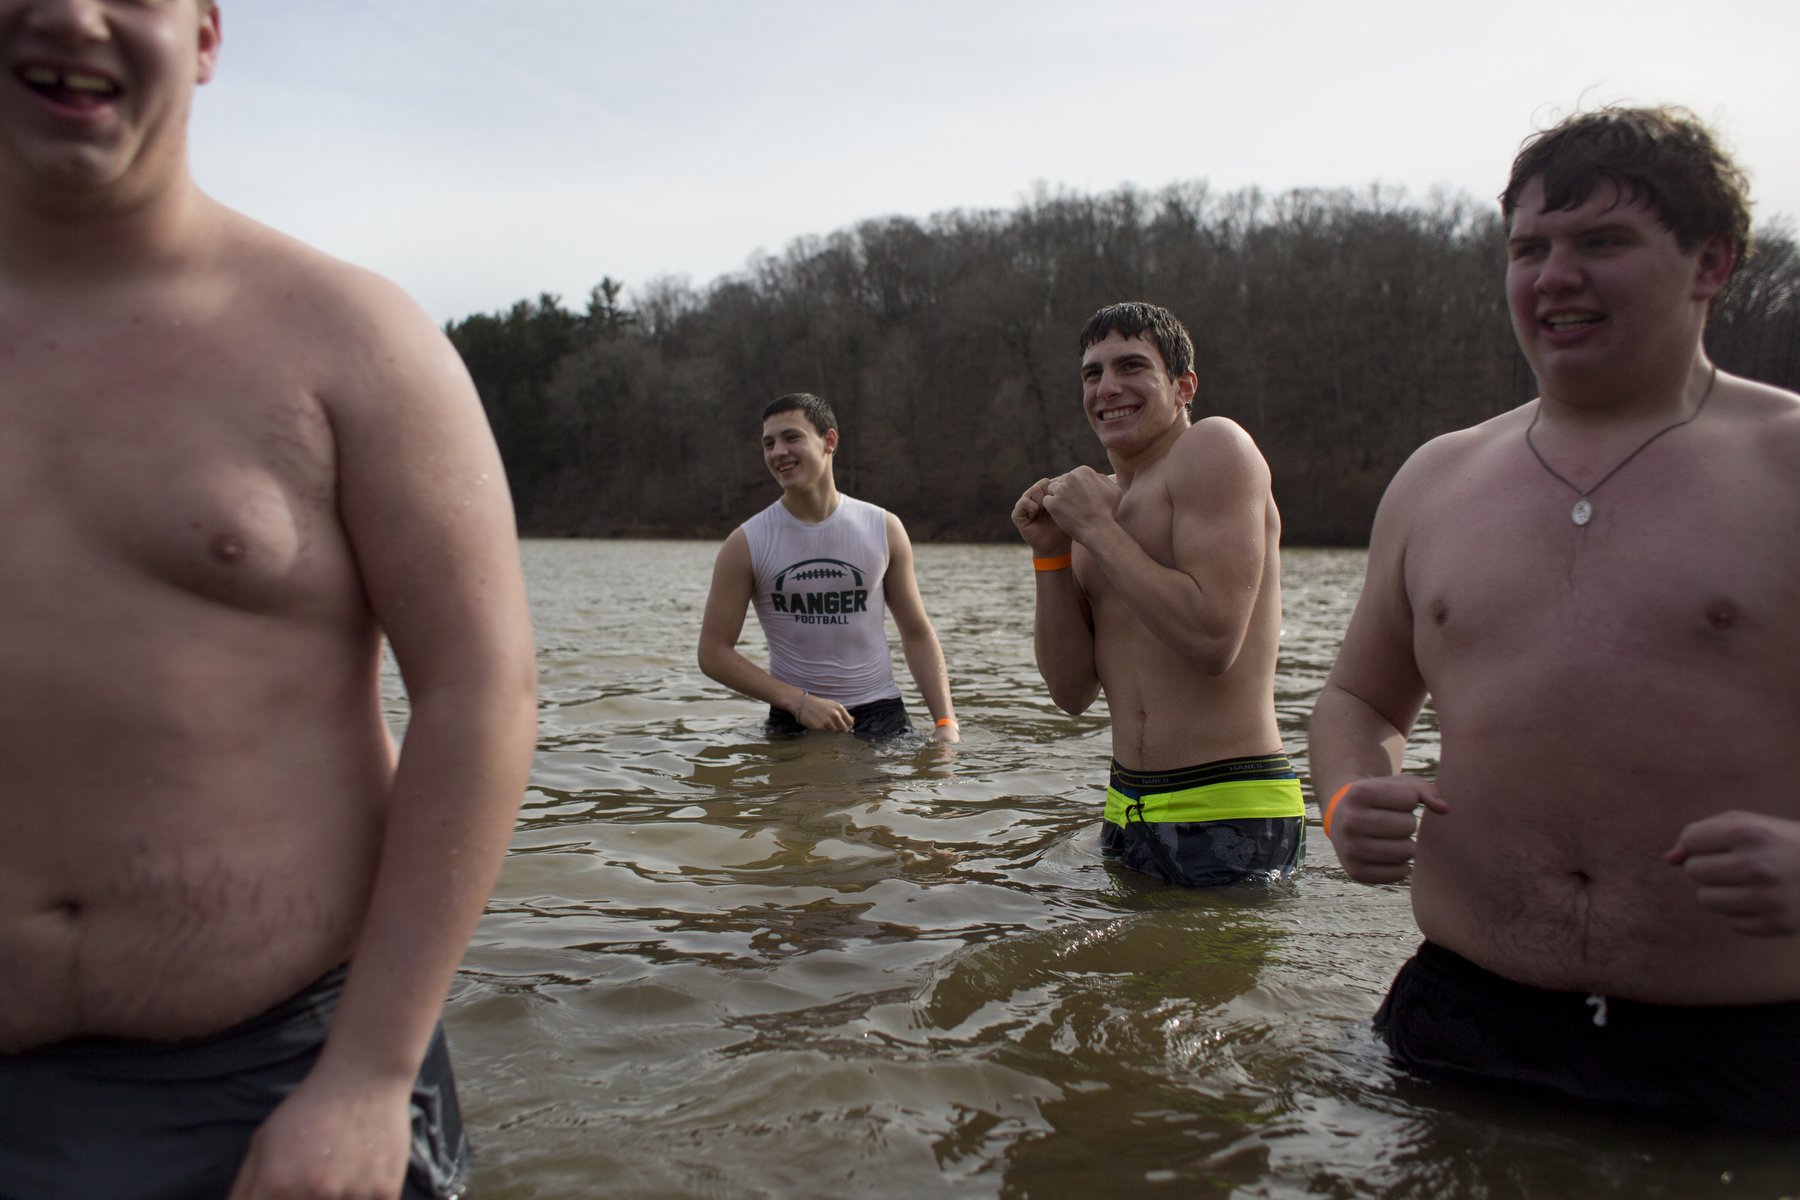 """Forest Park football players Zach Lueken of St. Anthony, 17, right, Garret Berg of Ferdinand, 16, Cory Uebelhor of Ferdinand, 15, and Brennan Weyer of Ferdinand, 16, held a contest to see who could stay in the 37-40-degree water the longest after the seventh annual polar plunge at the Ferdinand State Forest in Ferdinand on Sunday. Uebelhor won the contest and Berg placed second. """"As soon as I got in, my legs went numb,"""" said Berg."""